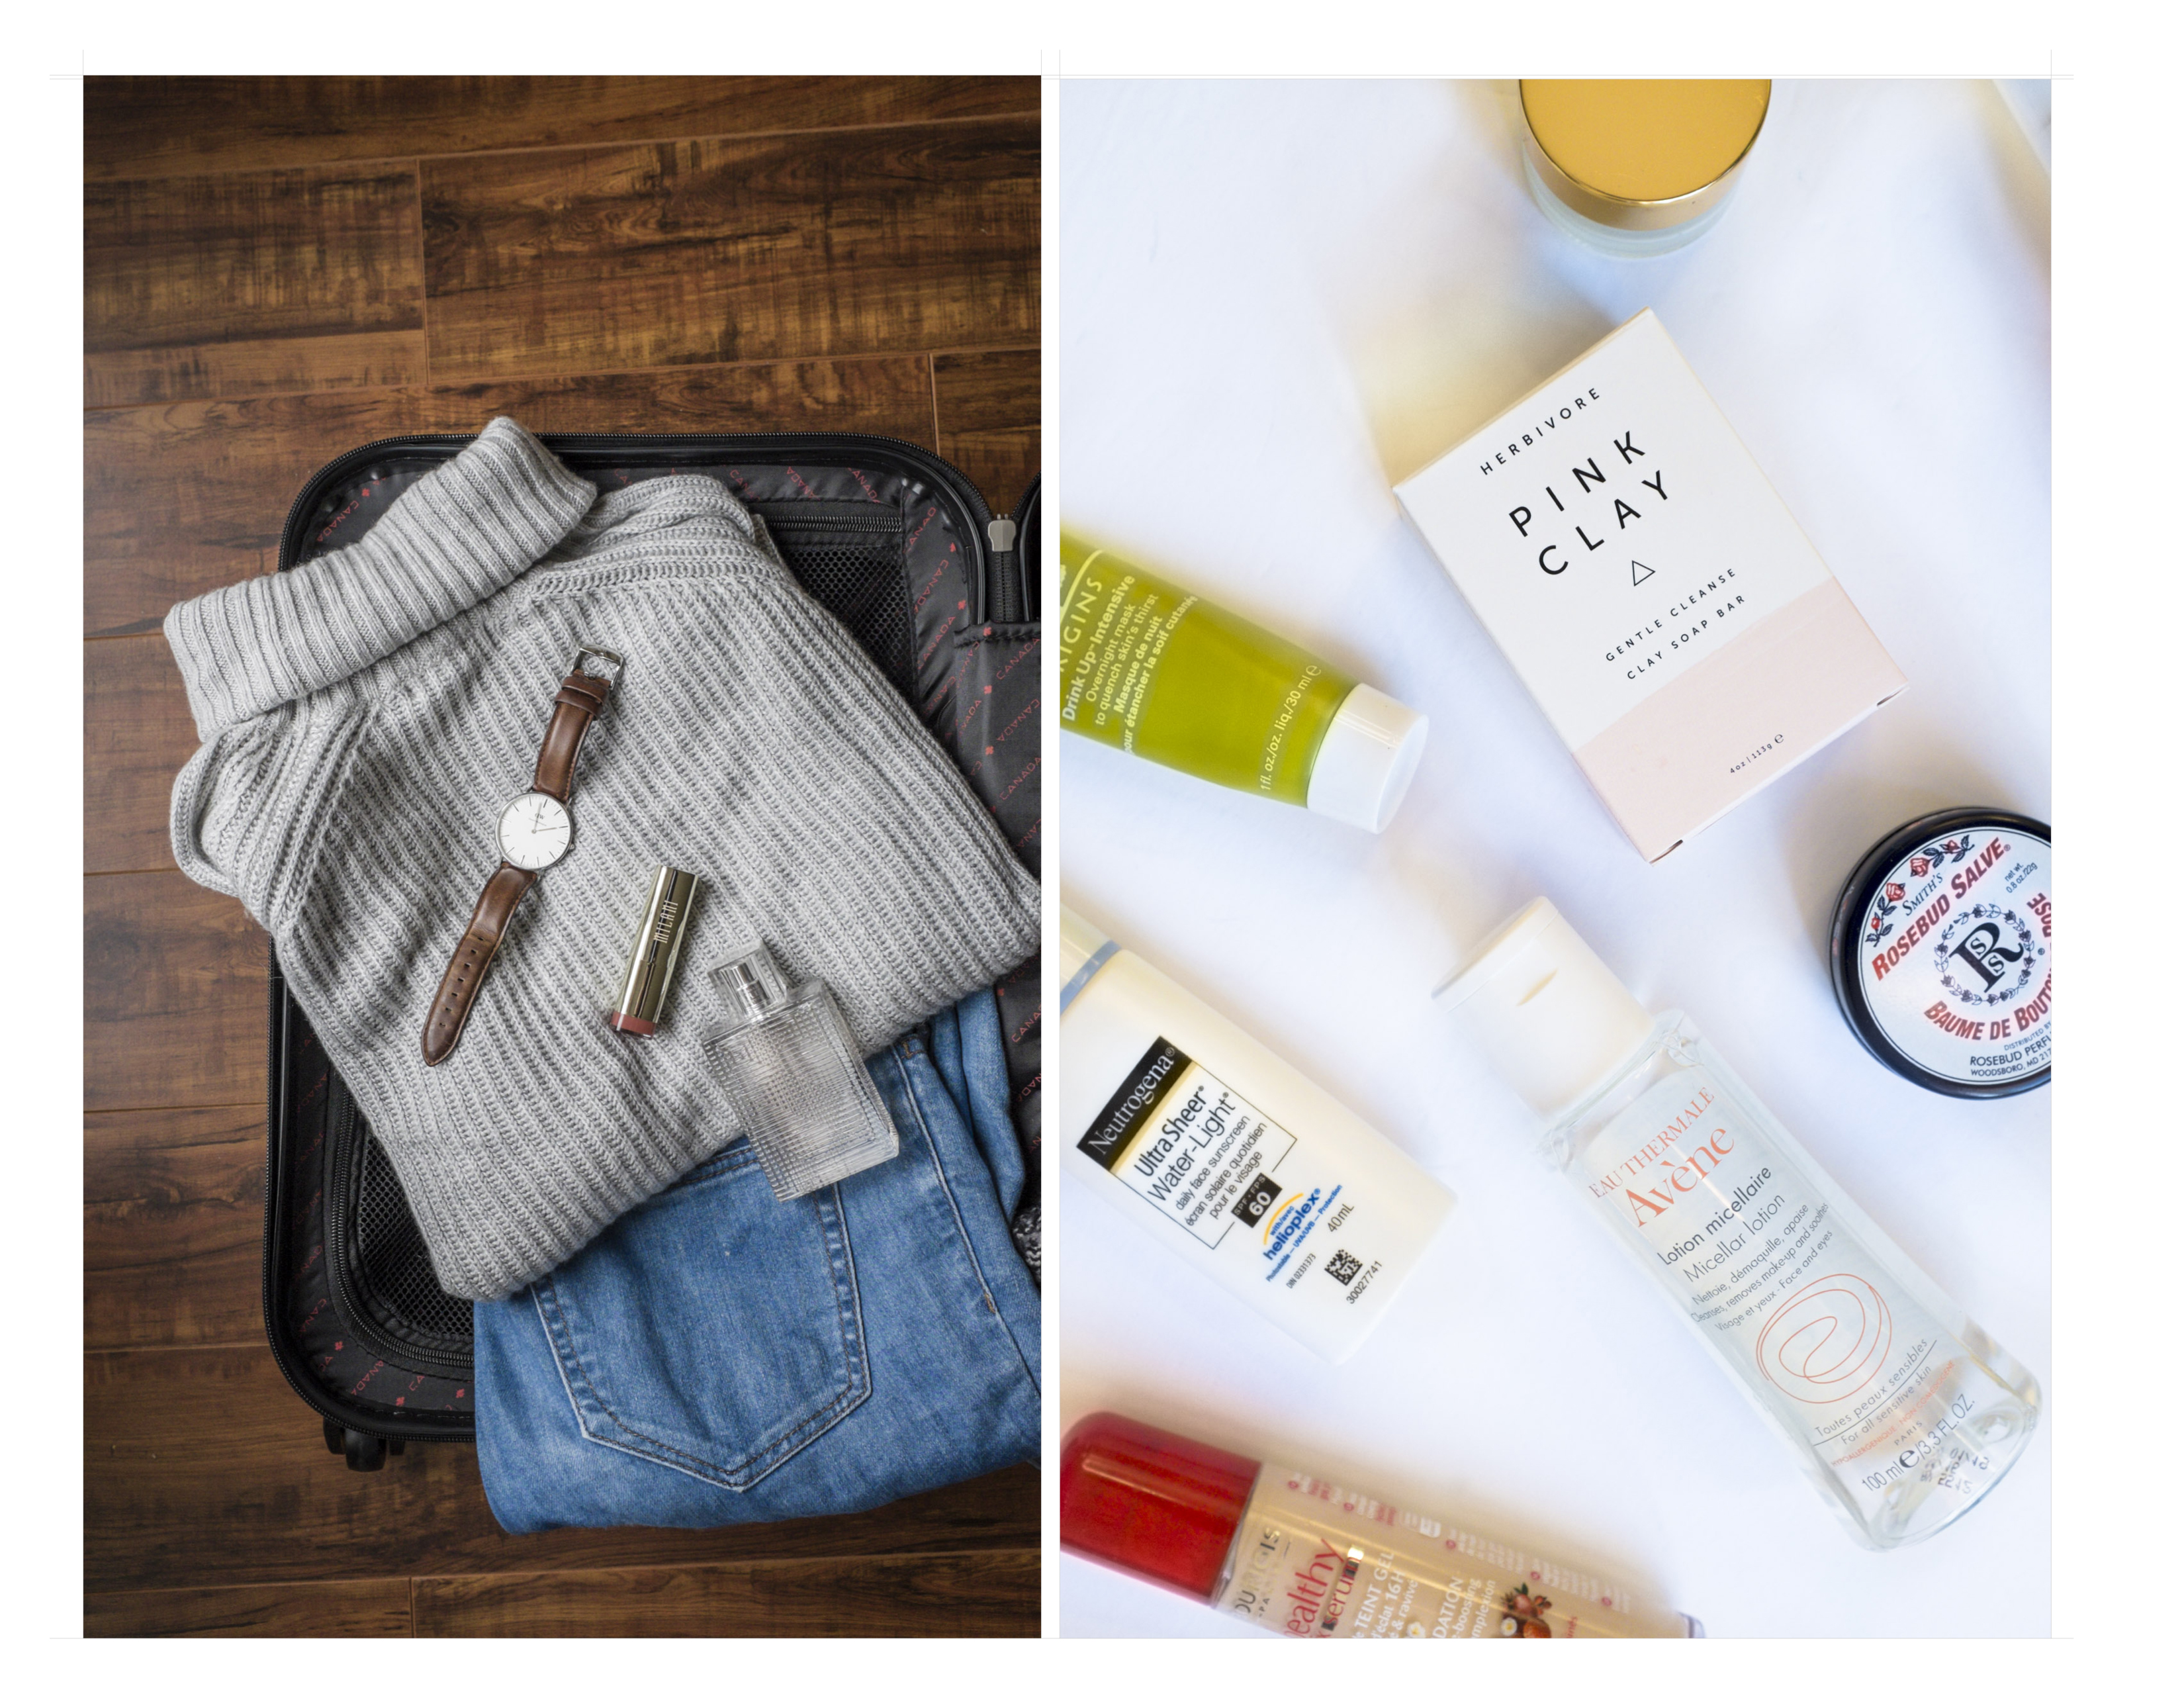 Where my Eyes go blog | Windsor Lifestyle | Packing for a trip |